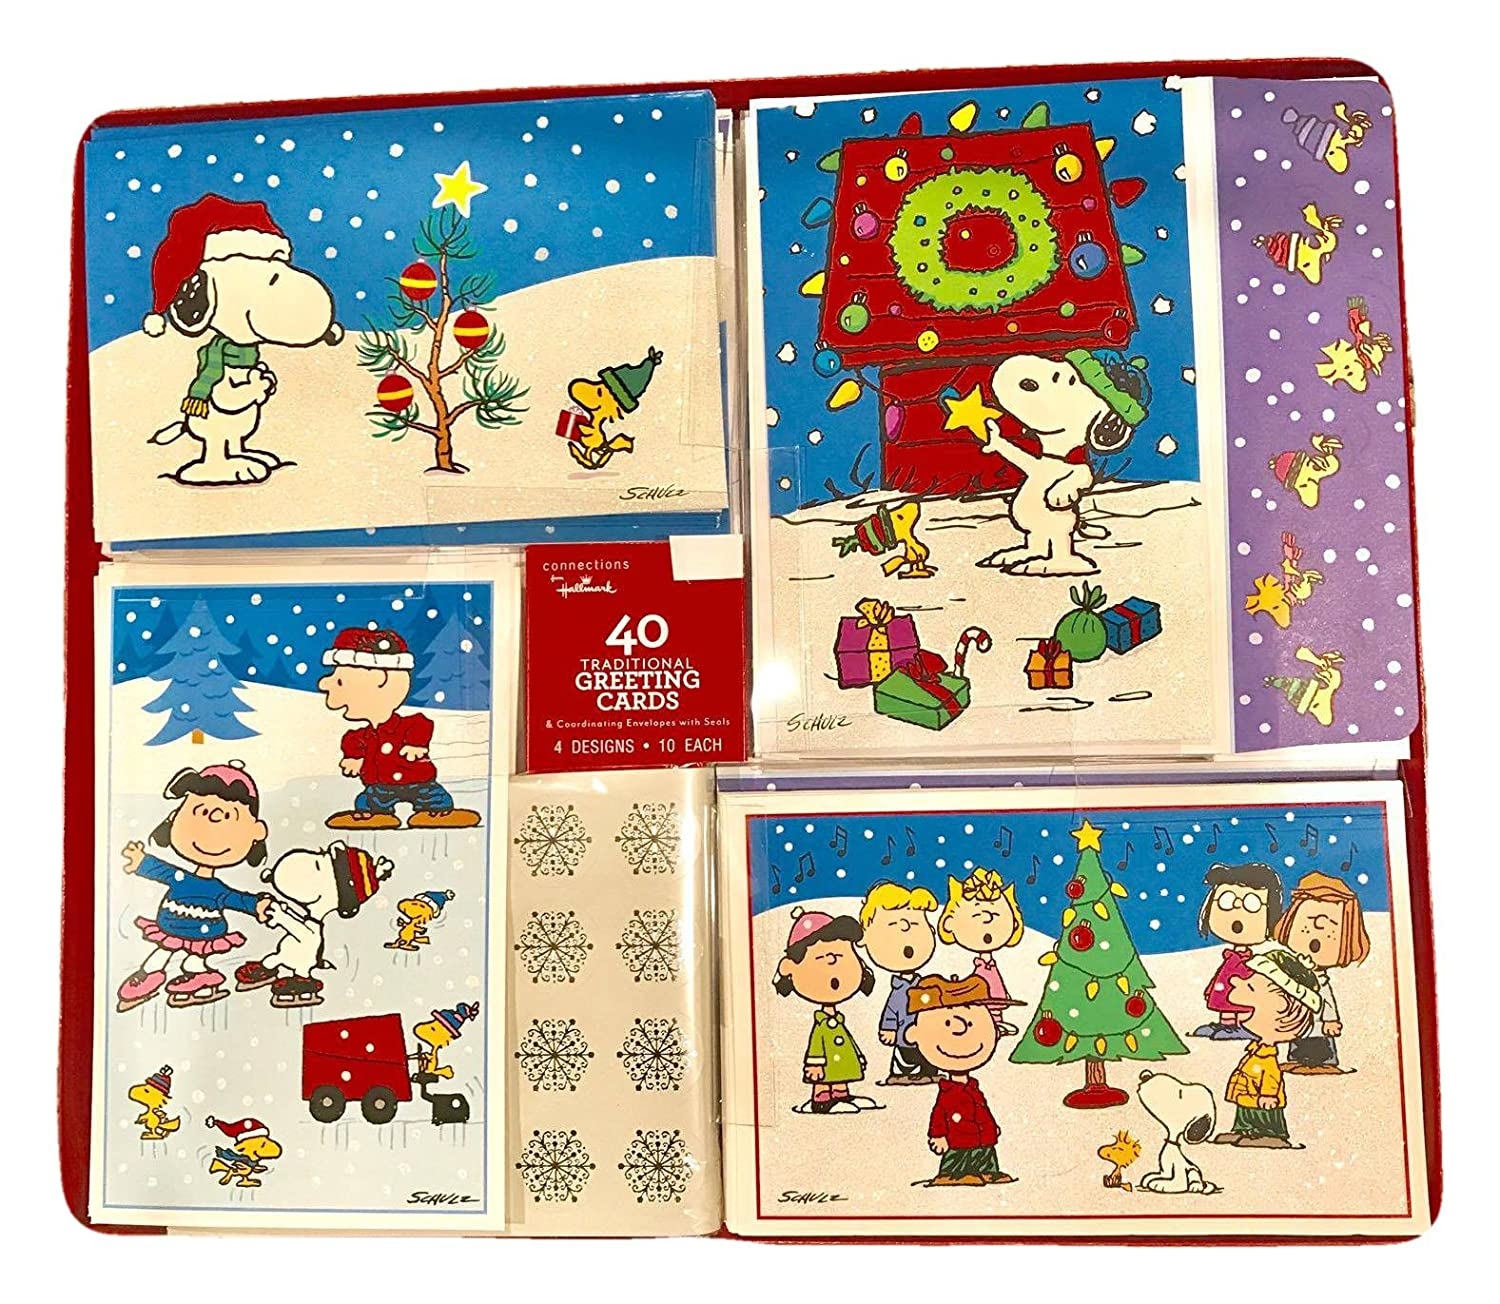 Amazon.com : Hallmark Peanuts Christmas Holiday Greeting Cards with ...